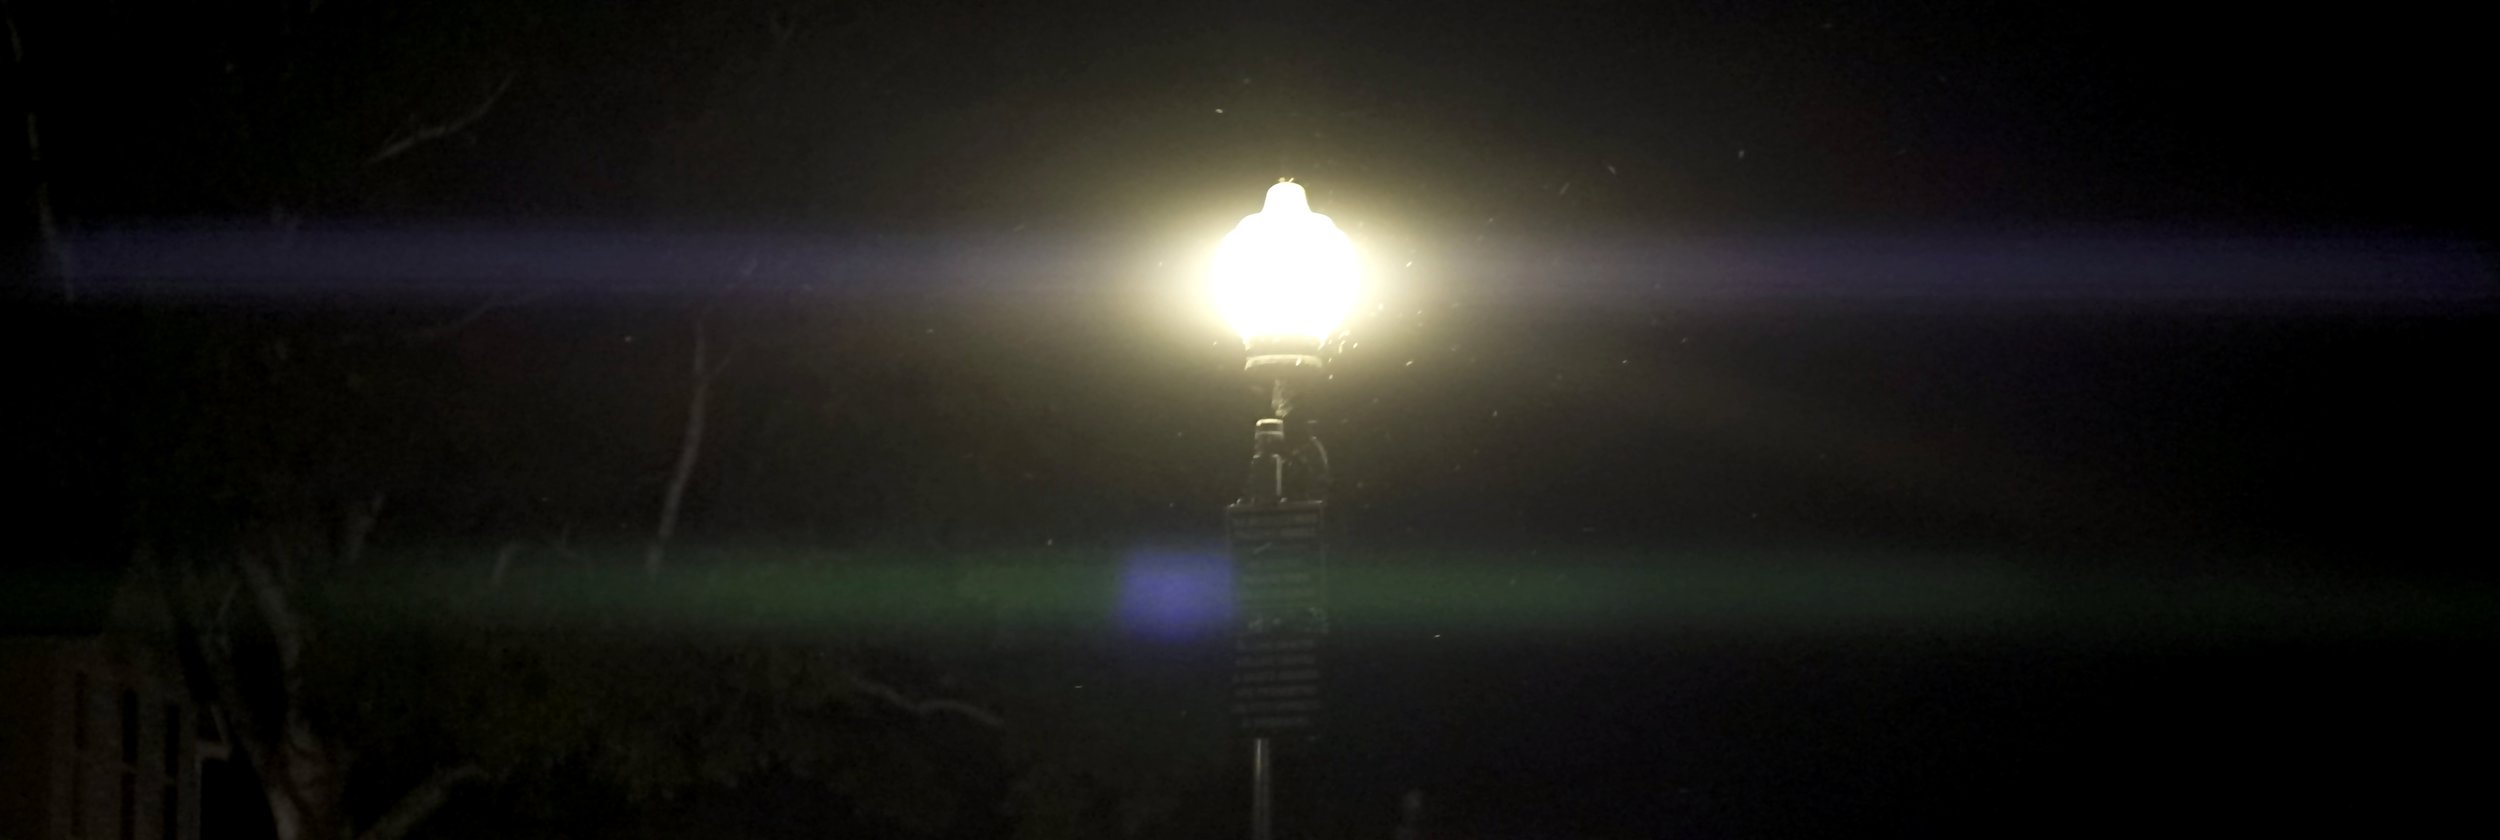 Lomo 100mm anamorphic lens | A streetlamp at Mission Point Resort on Mackinac Island creates this flare. Photo by: Keith Nickoson.